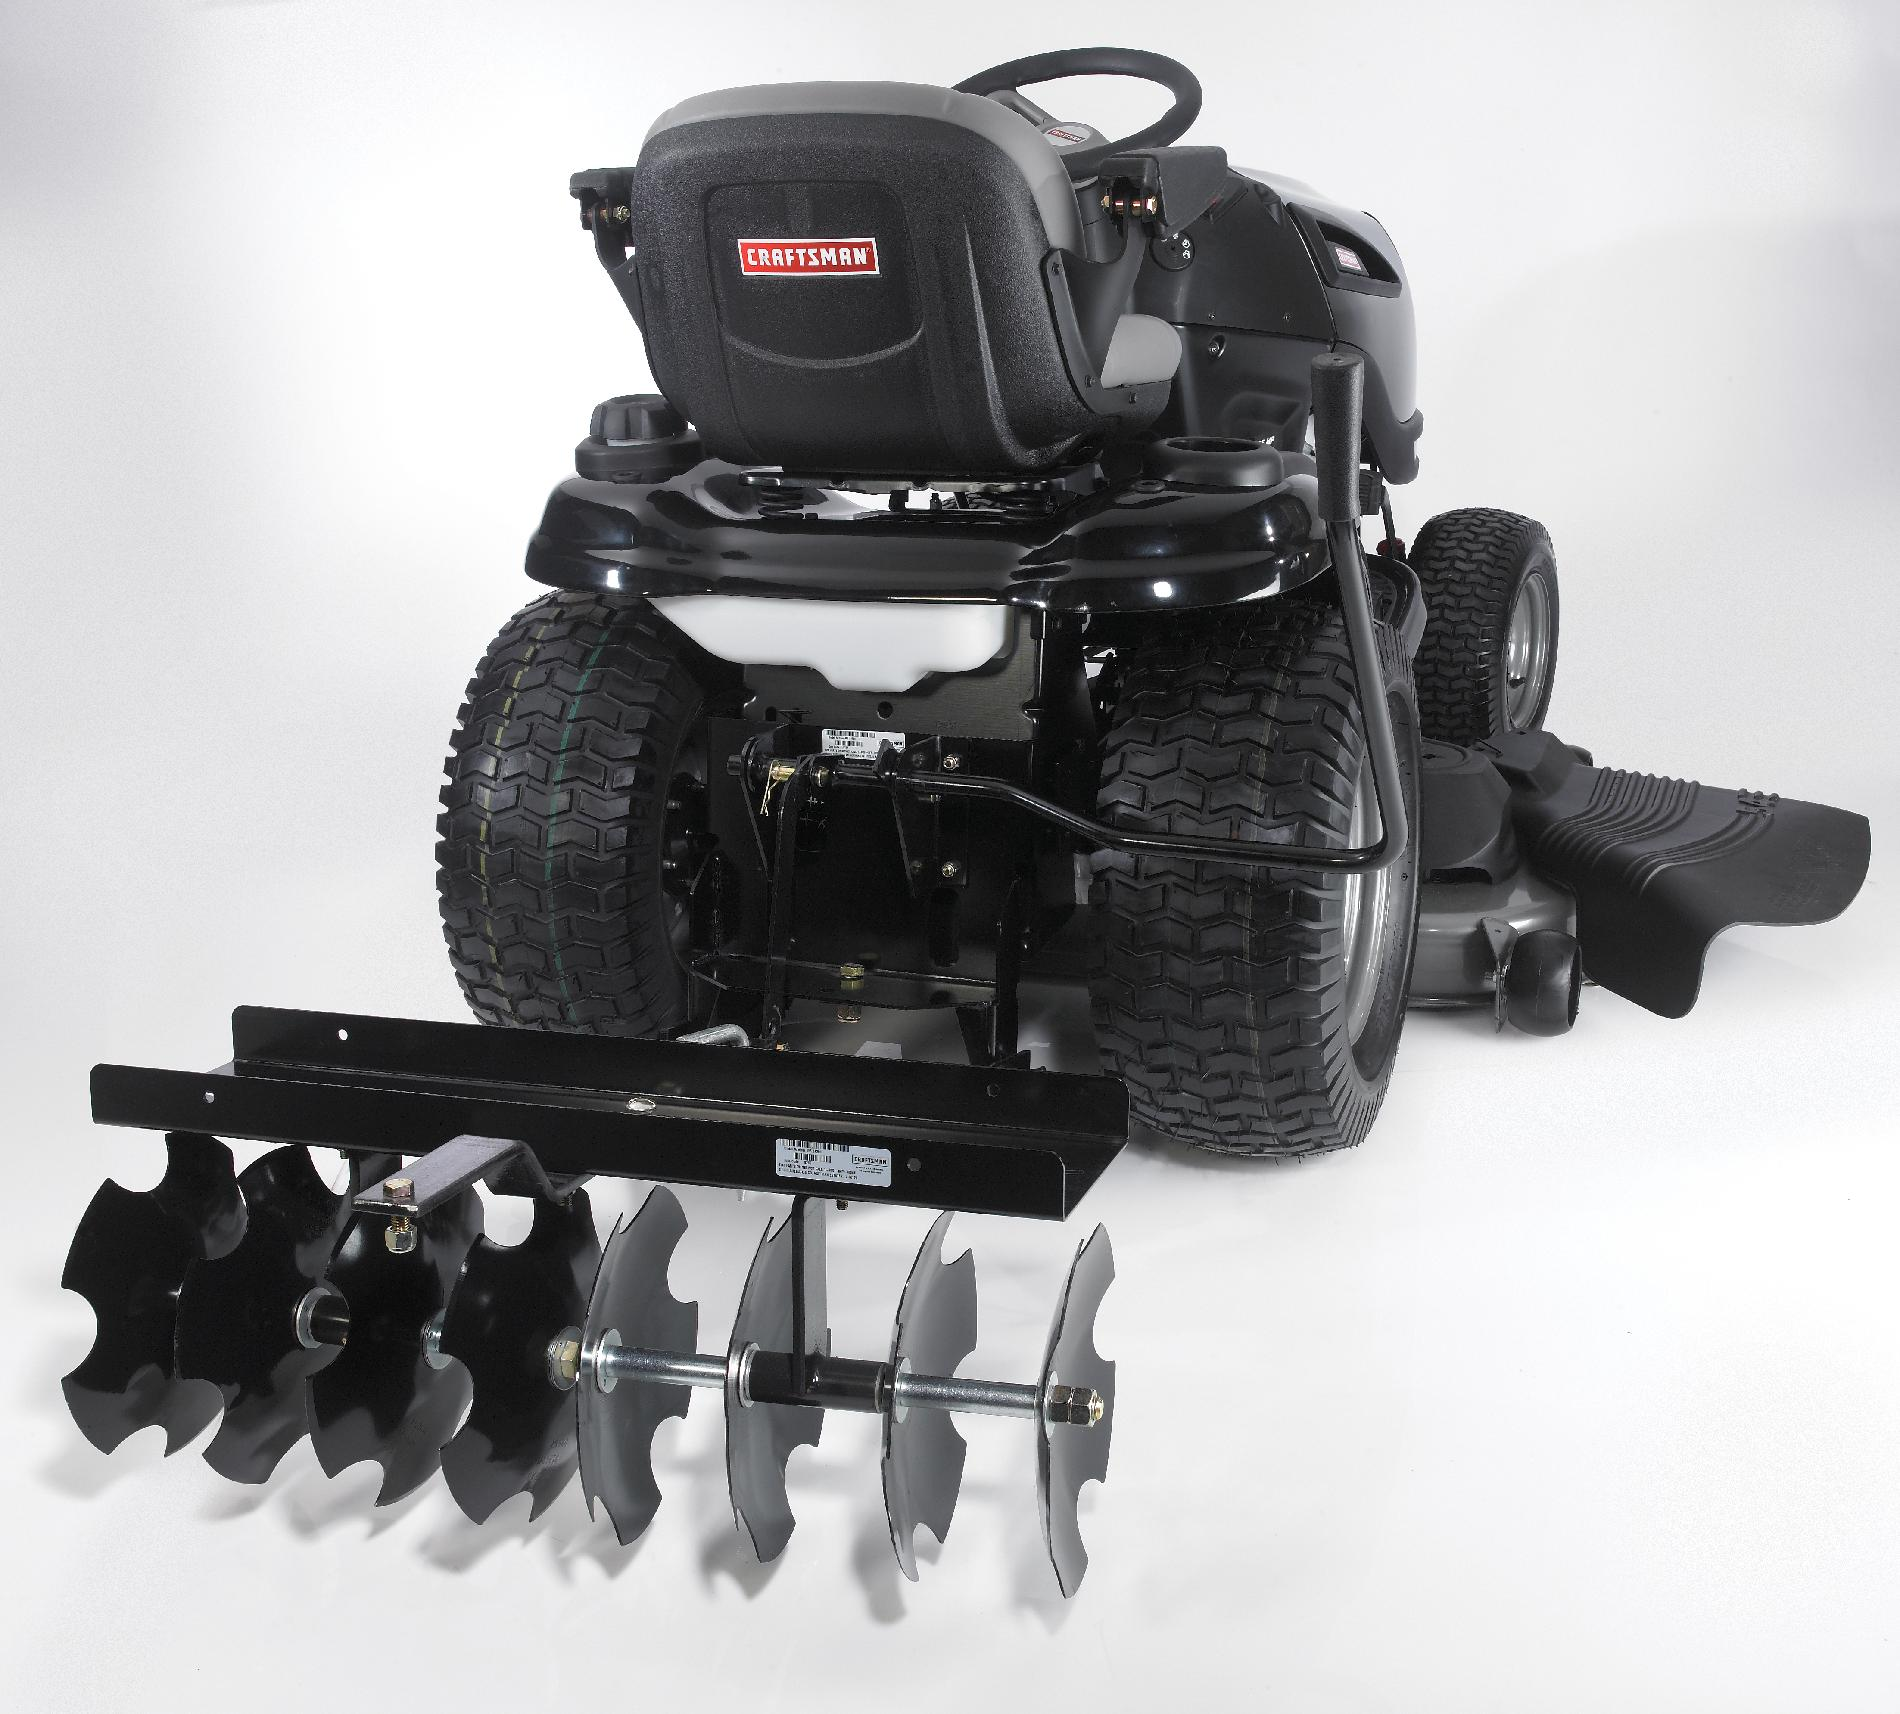 Craftsman Garden Tractor Sleeve Hitch Tractor Attachments At Sears